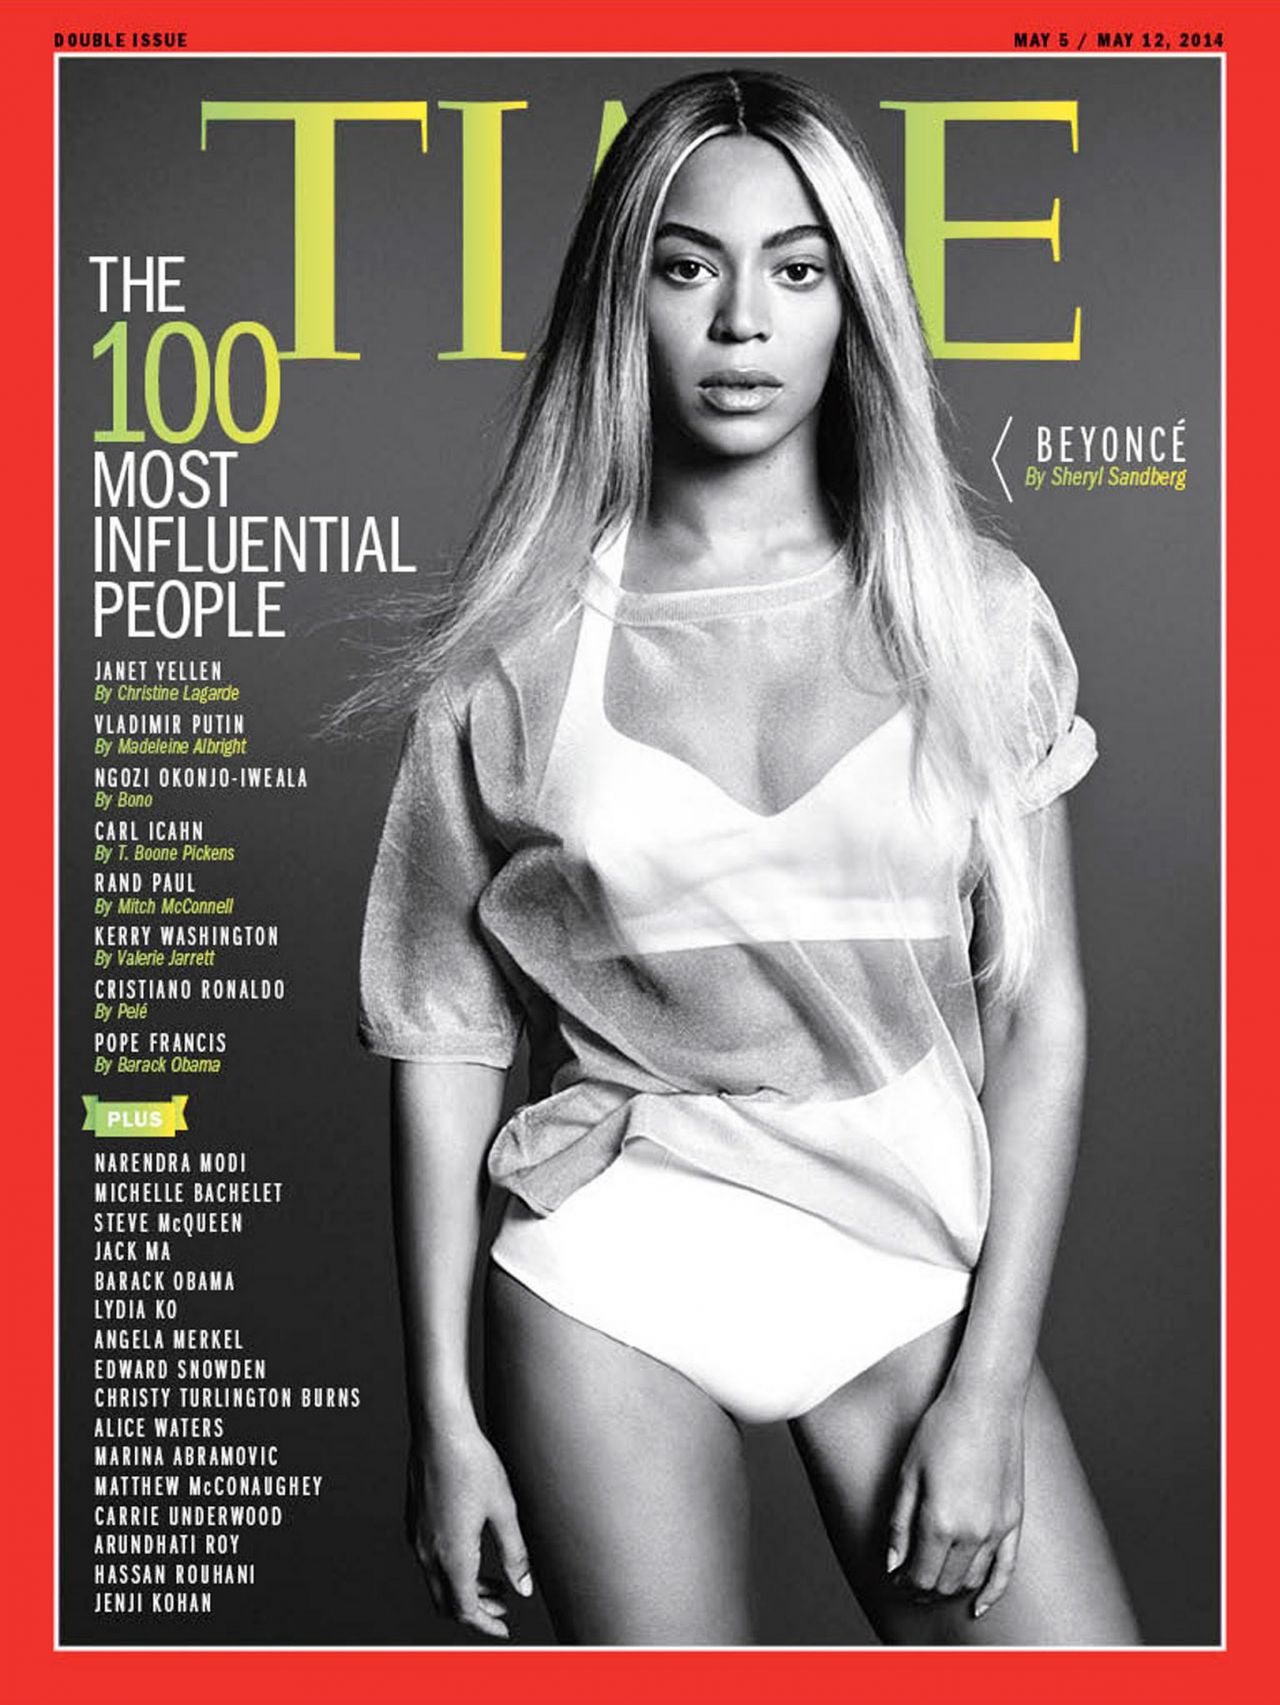 Beyonce Knowles - Time Magazine May 5th, 2014 Cover